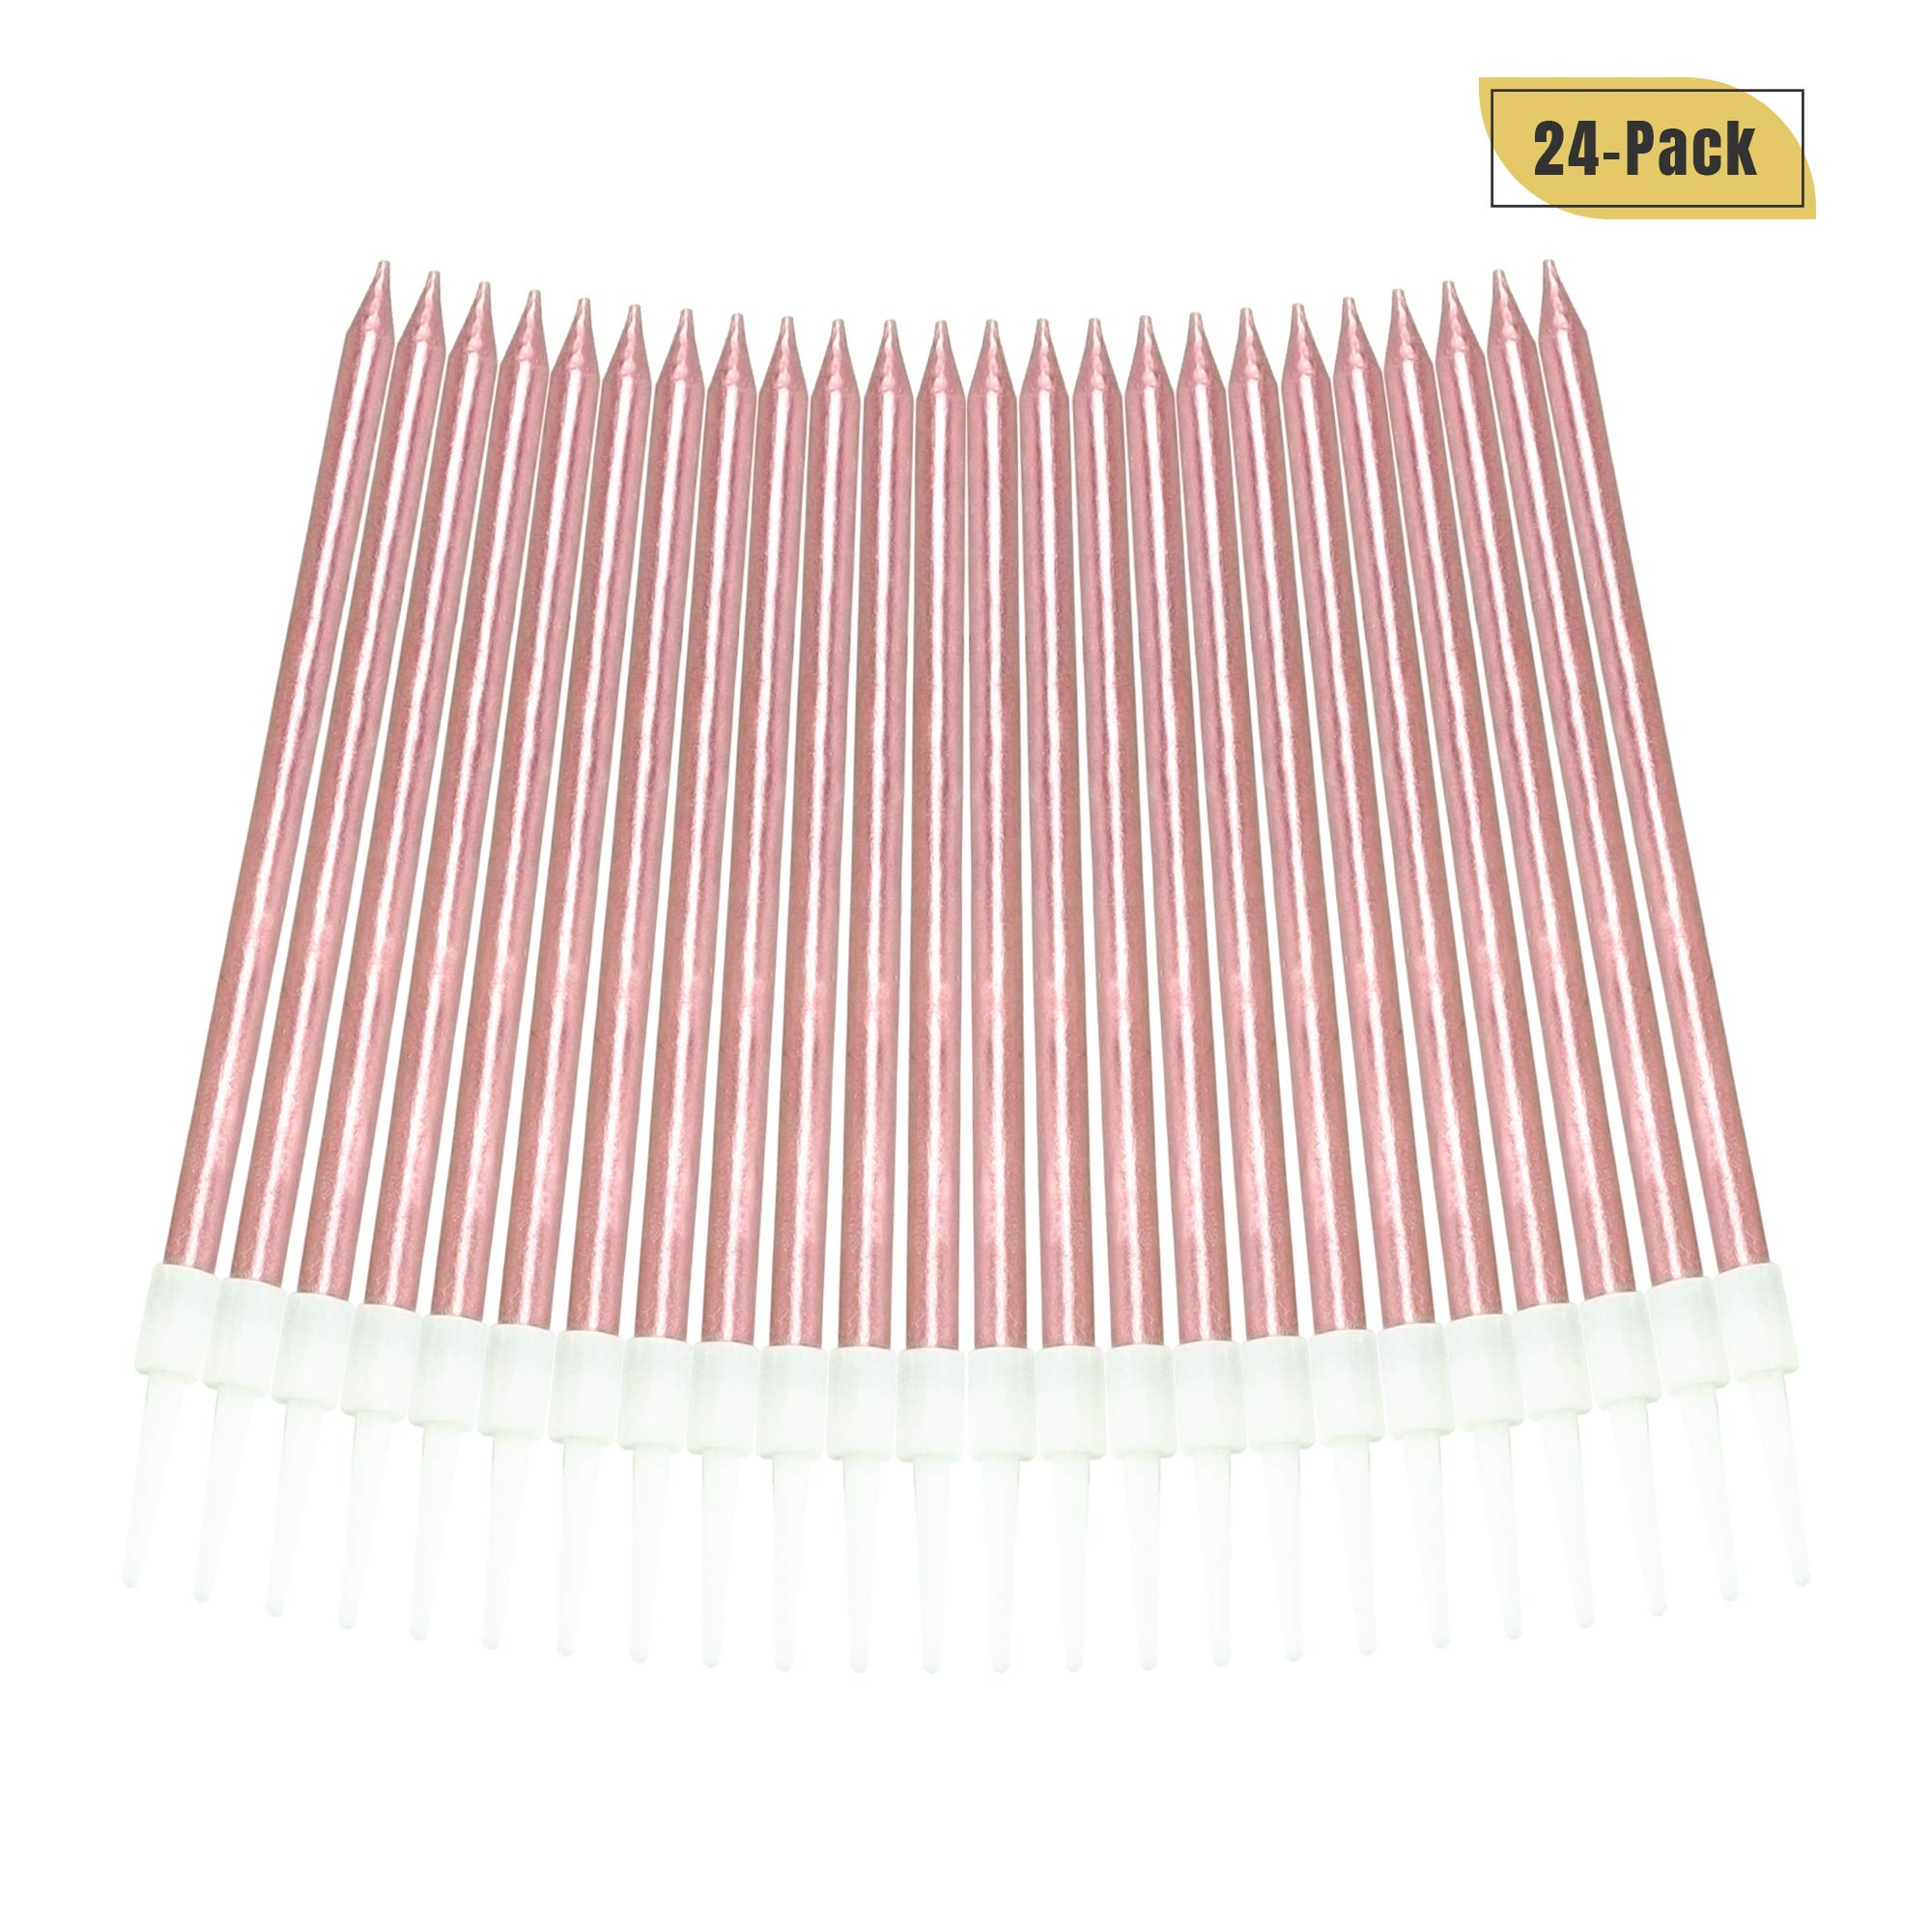 Aplusplanet 24 Count Pink Birthday Candles, Metallic Long Thin Pink Cake Candles in Holders for Cupcake Wedding Cake Birthday Cake Party Cake Decorations